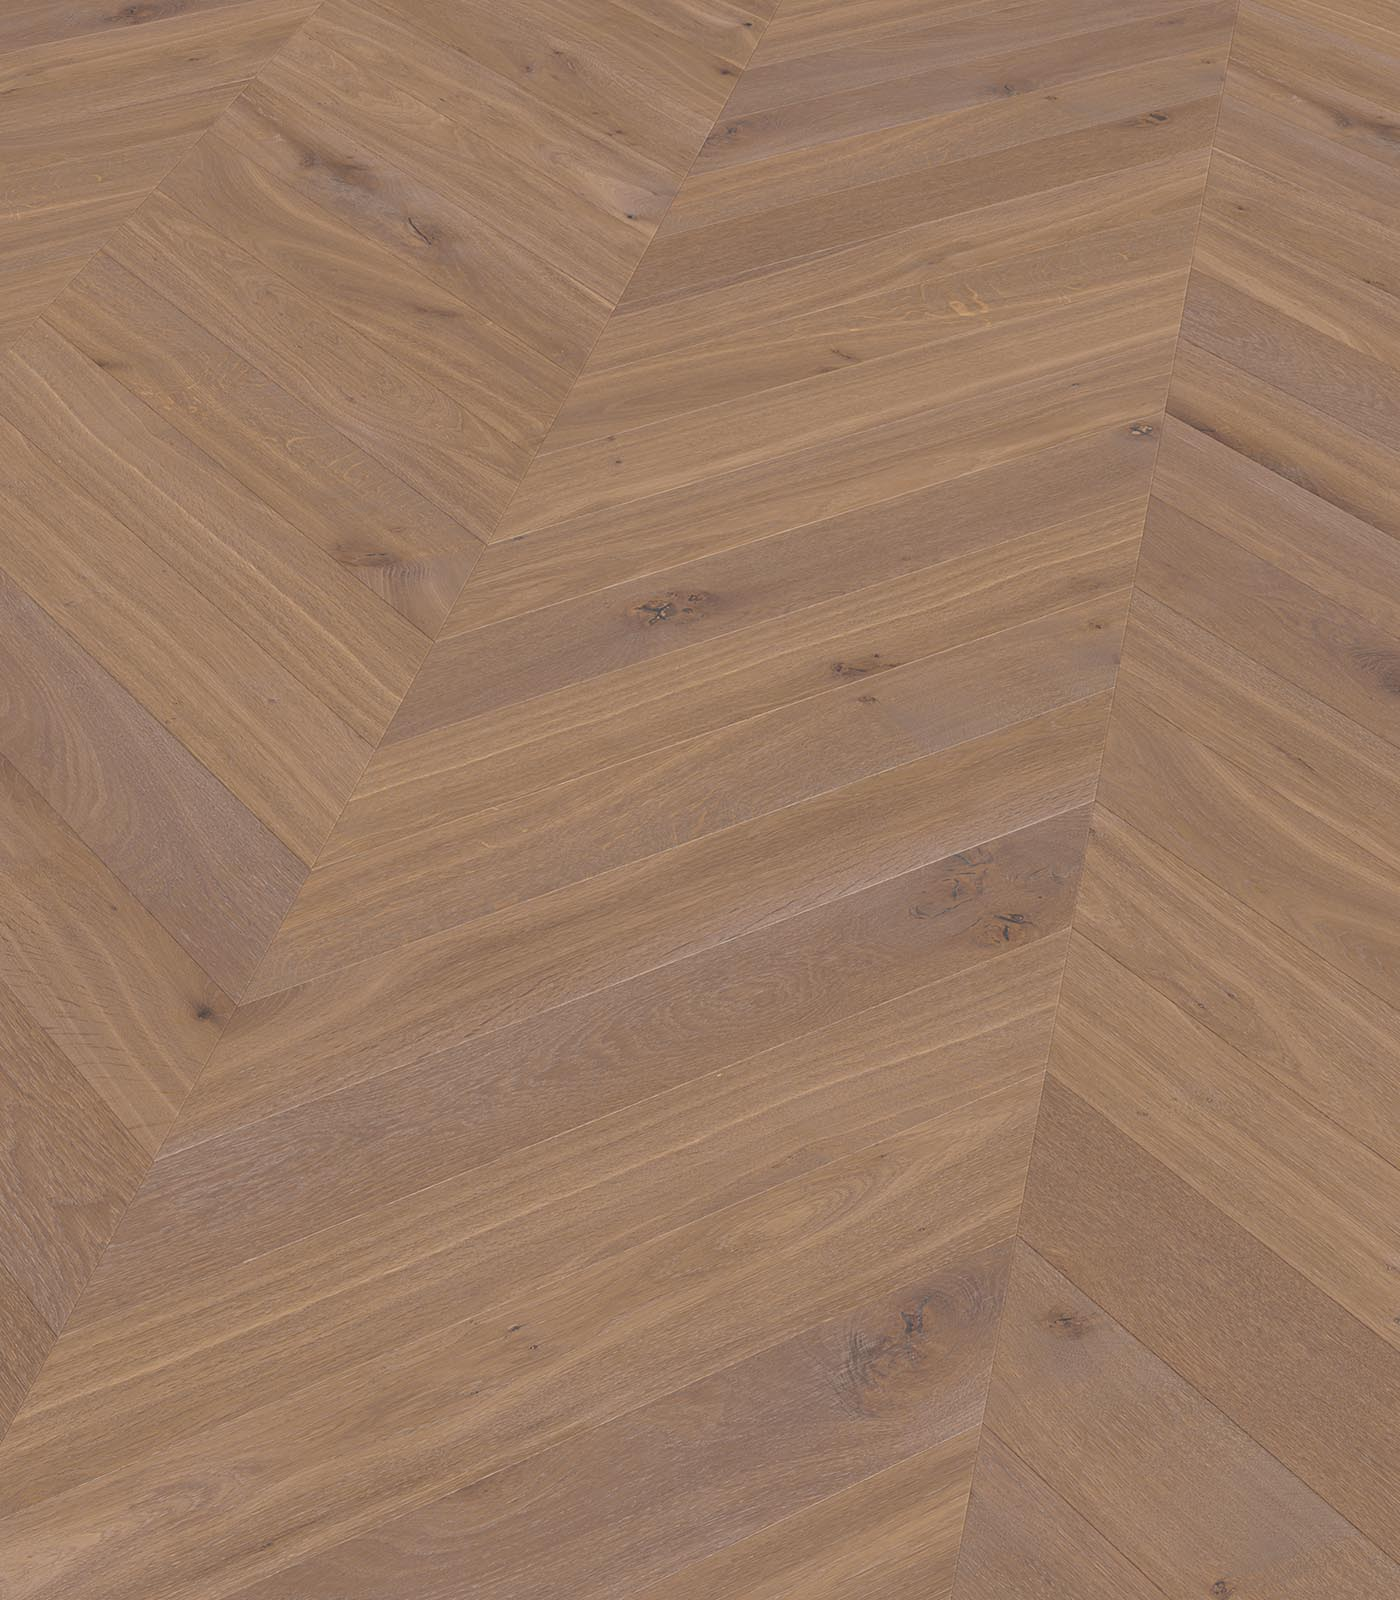 Biarritz-European Chevron Oak floors-Fashion collection-angle